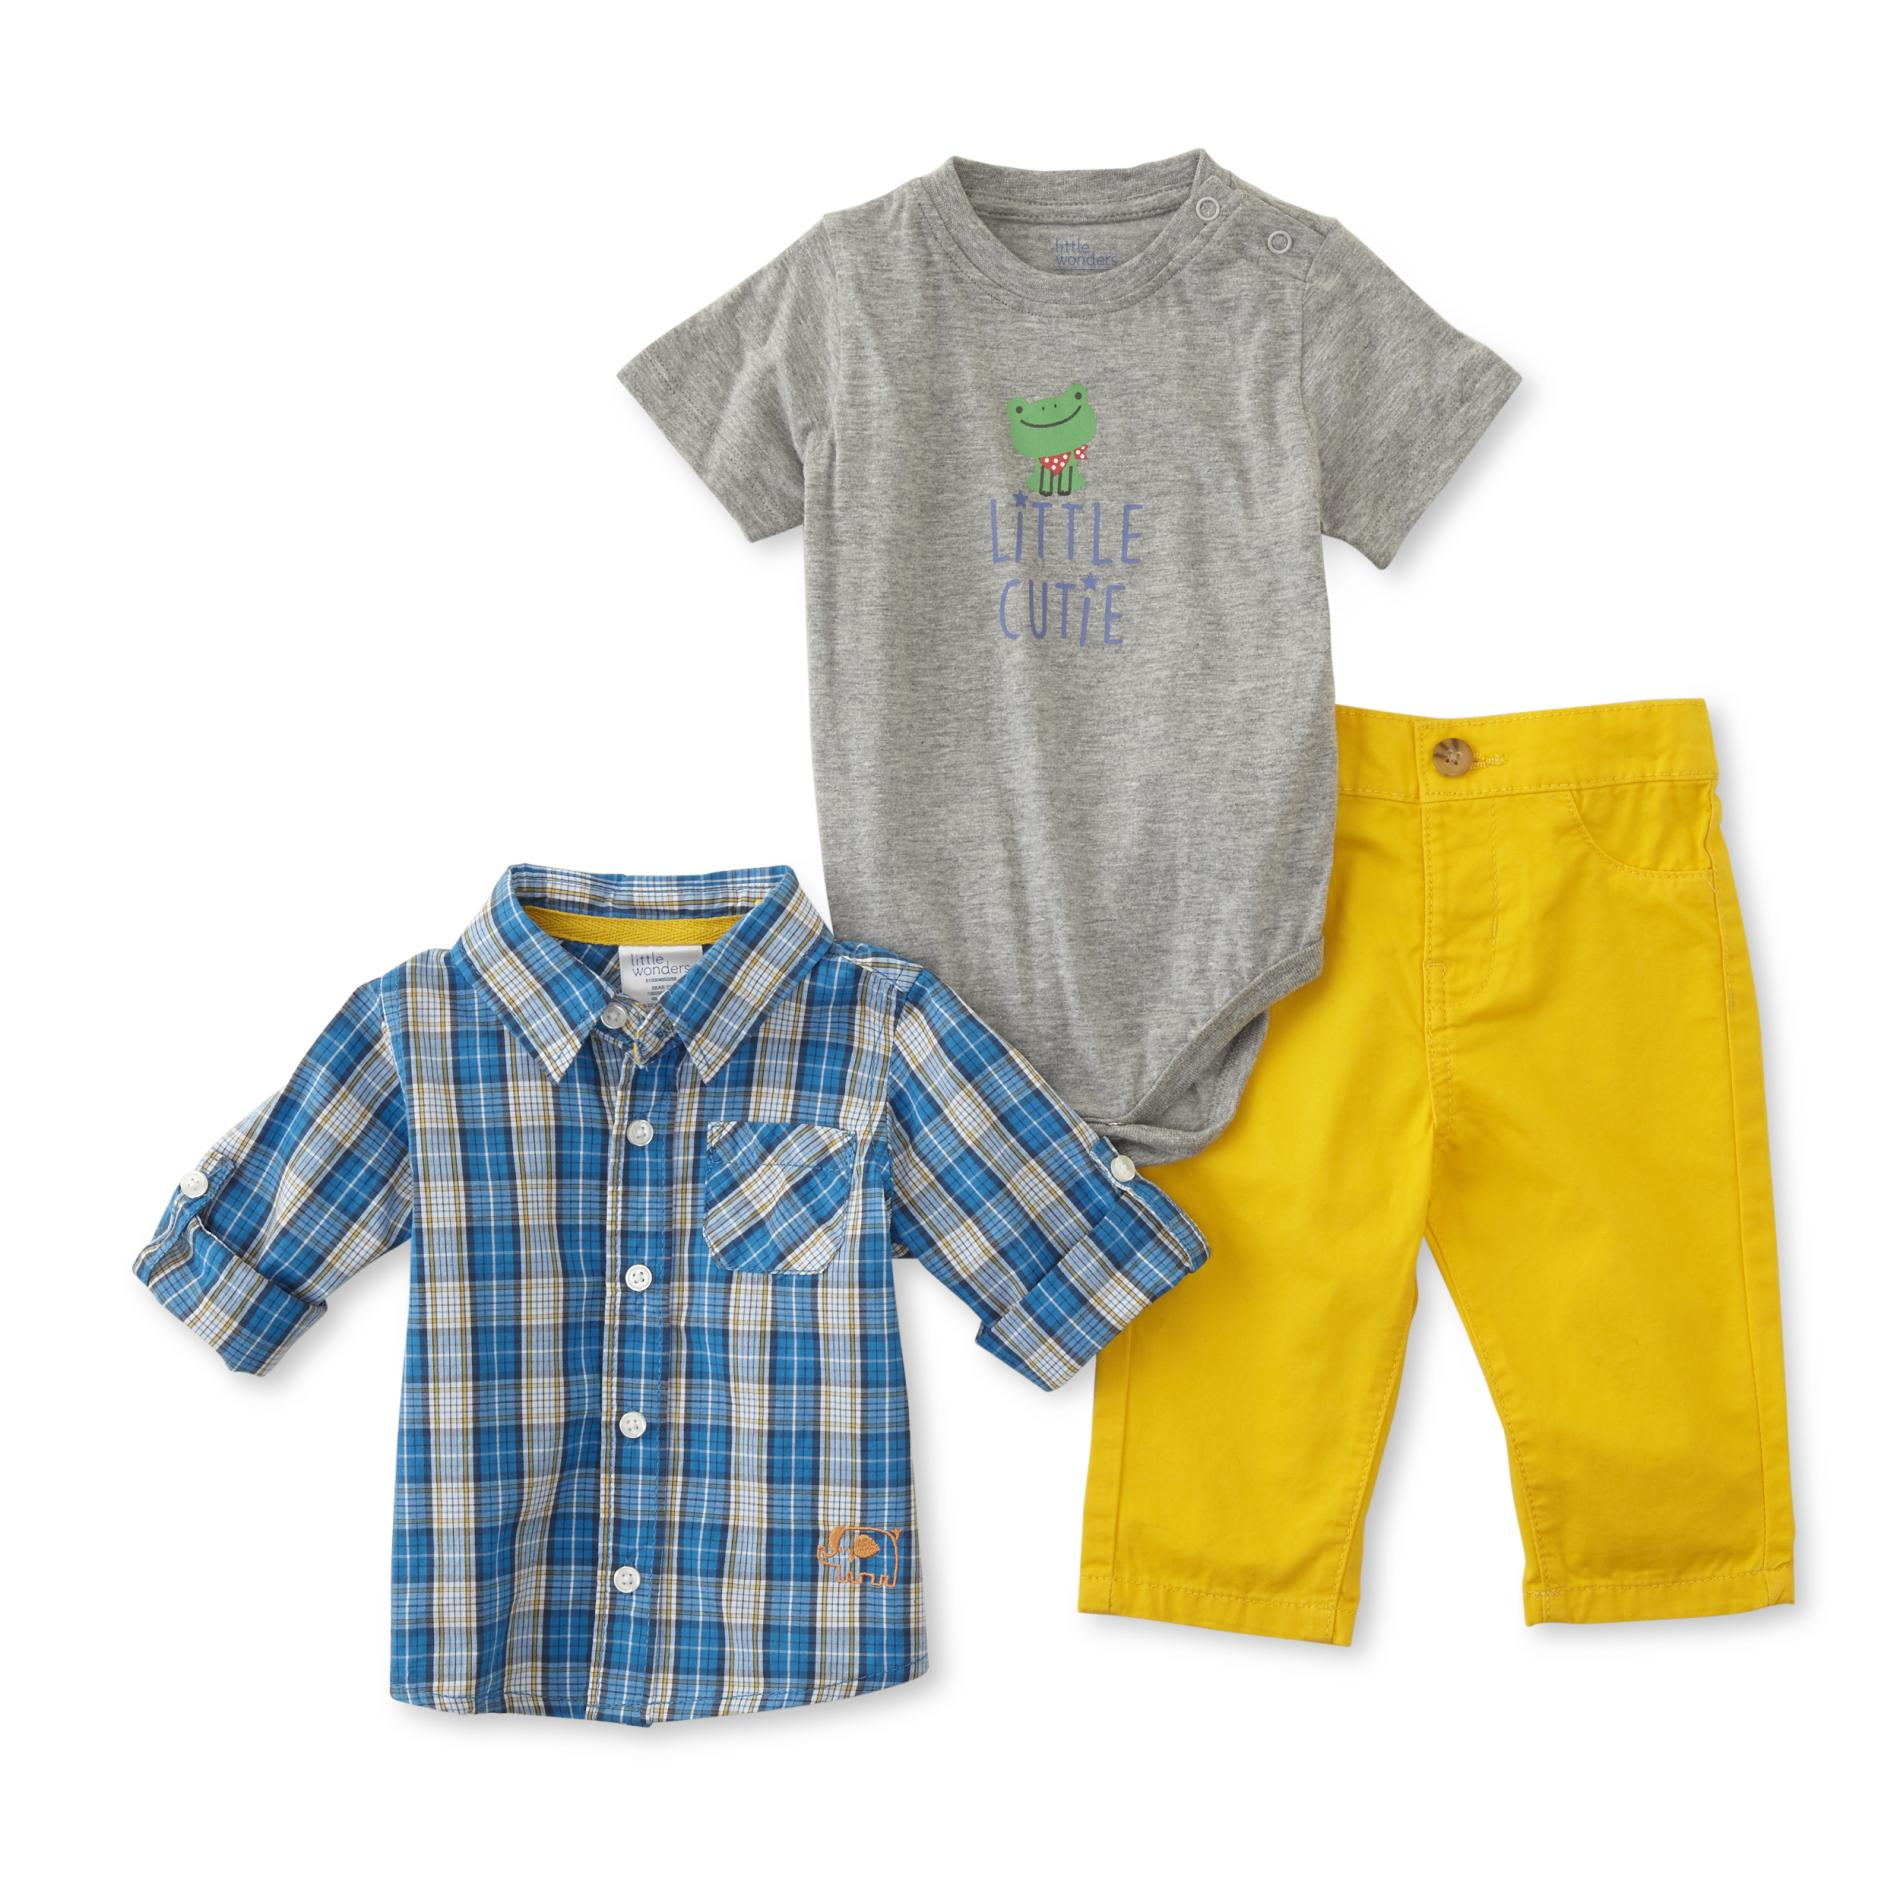 Little Wonders Baby Clothing Sets Sears